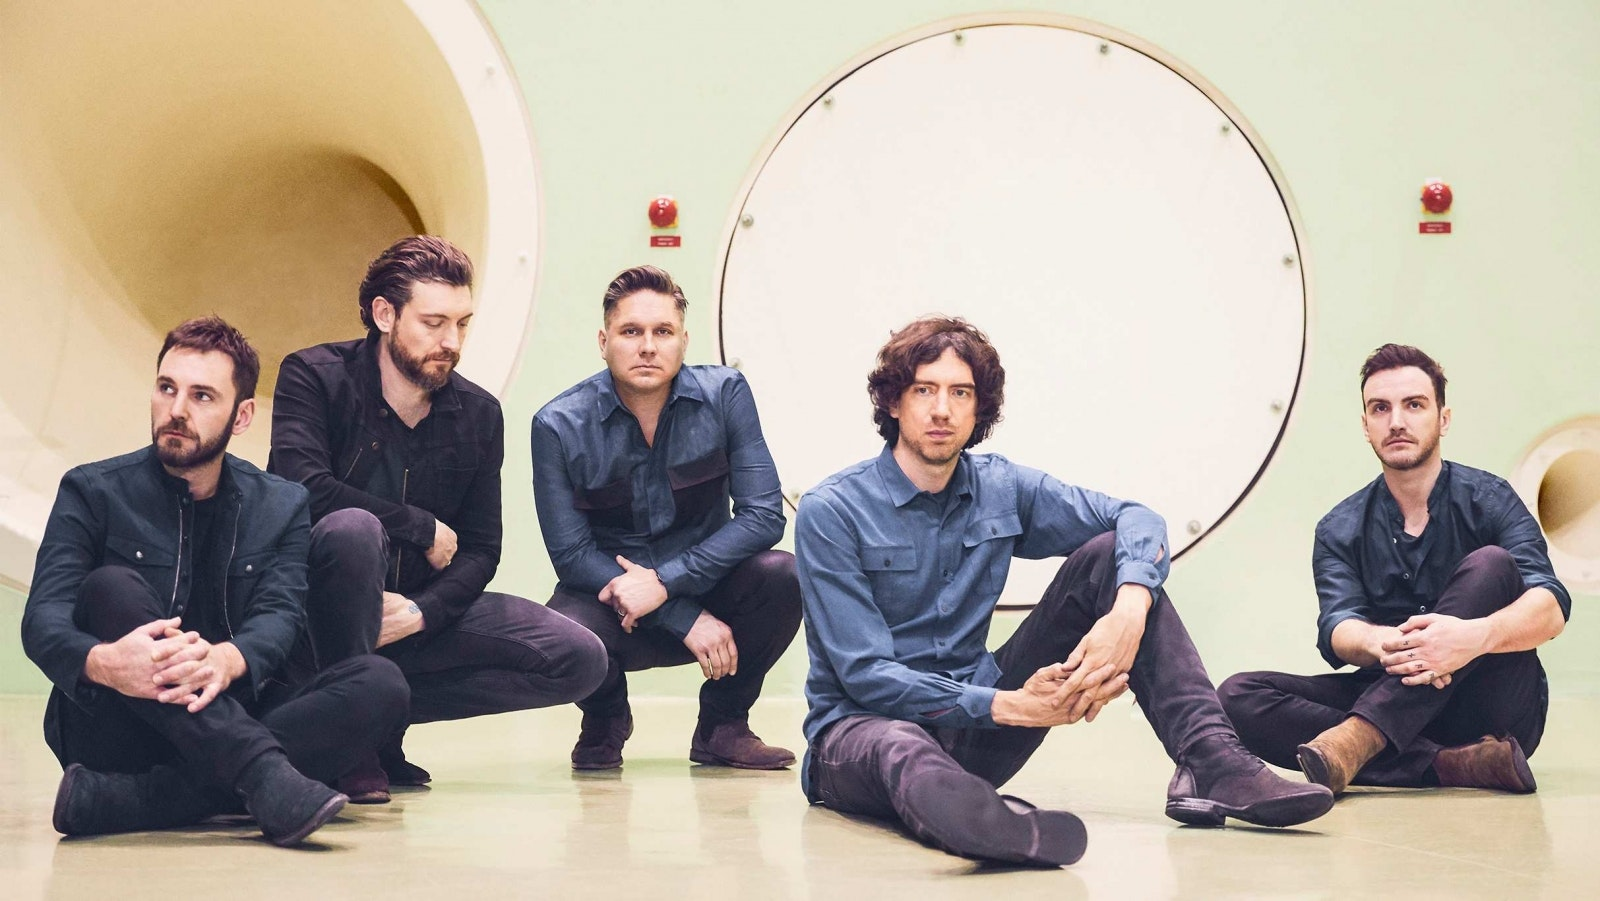 Snow Patrol are back with a new album and upcoming tour